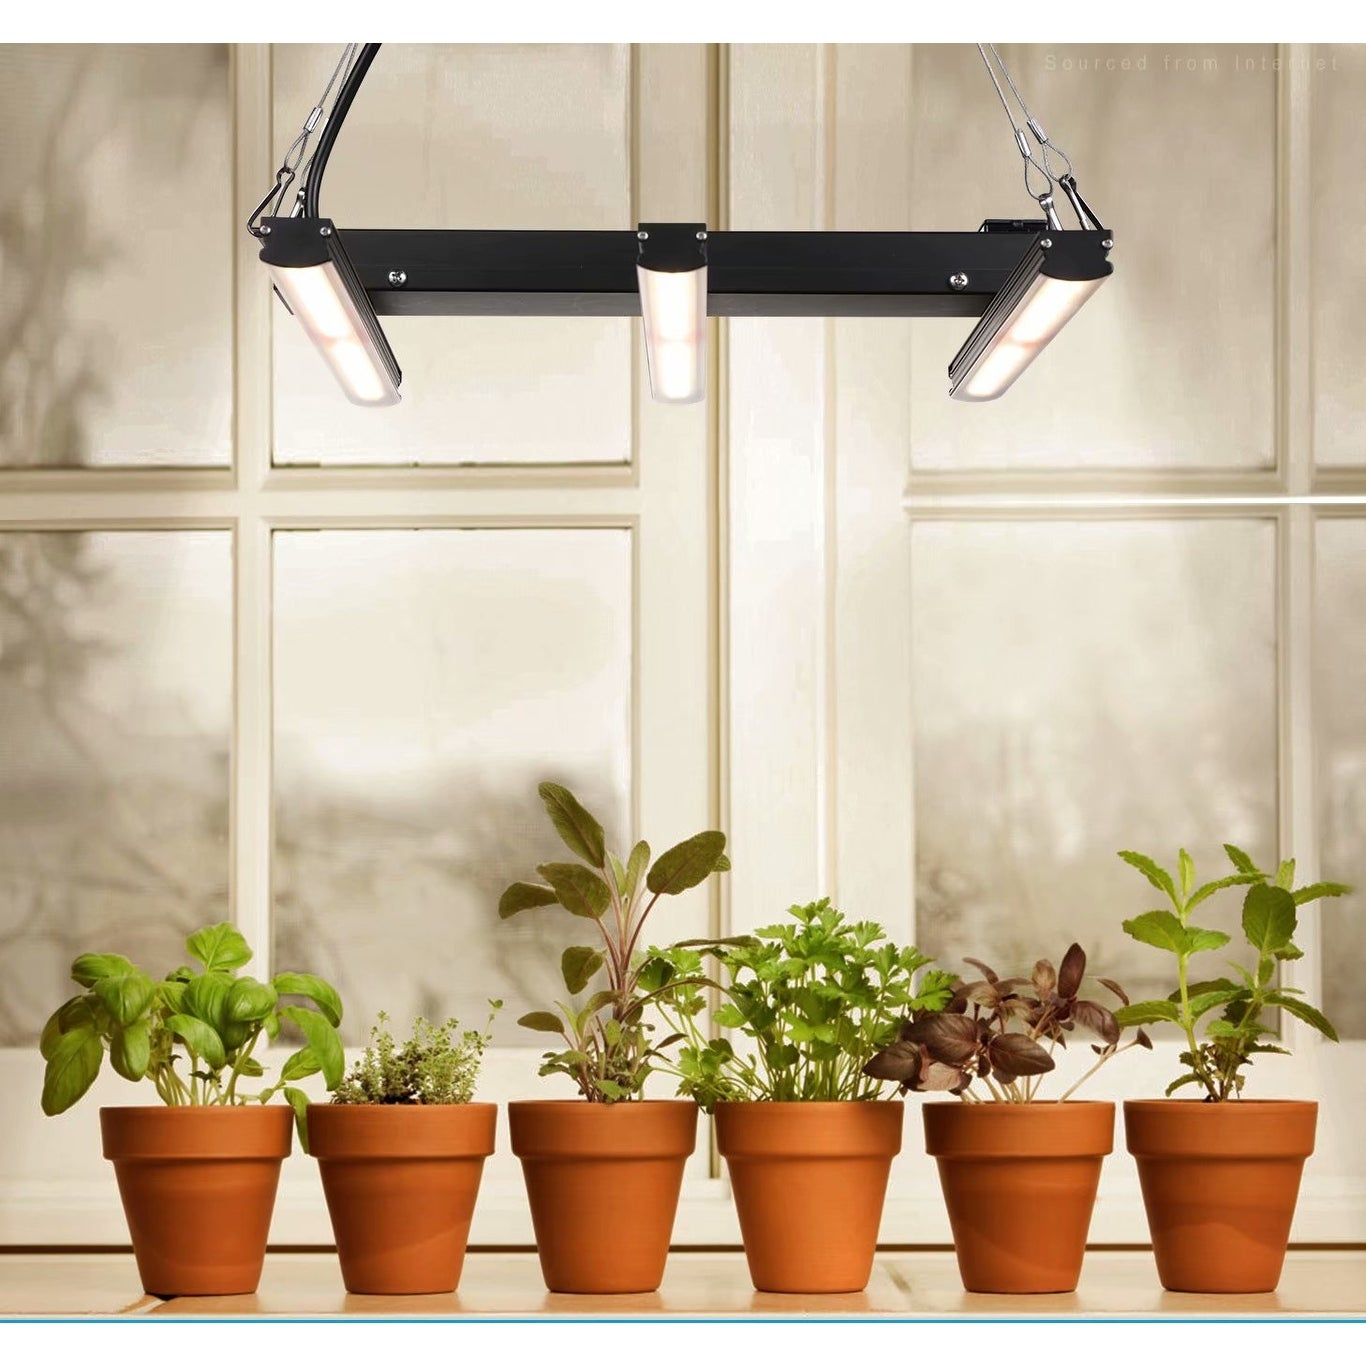 Shop Black Friday Deals On Plug In Linkable Led Indoor Plant Grow Light Full Spectrum Hanging Mount Fixture 1pack Overstock 30892489